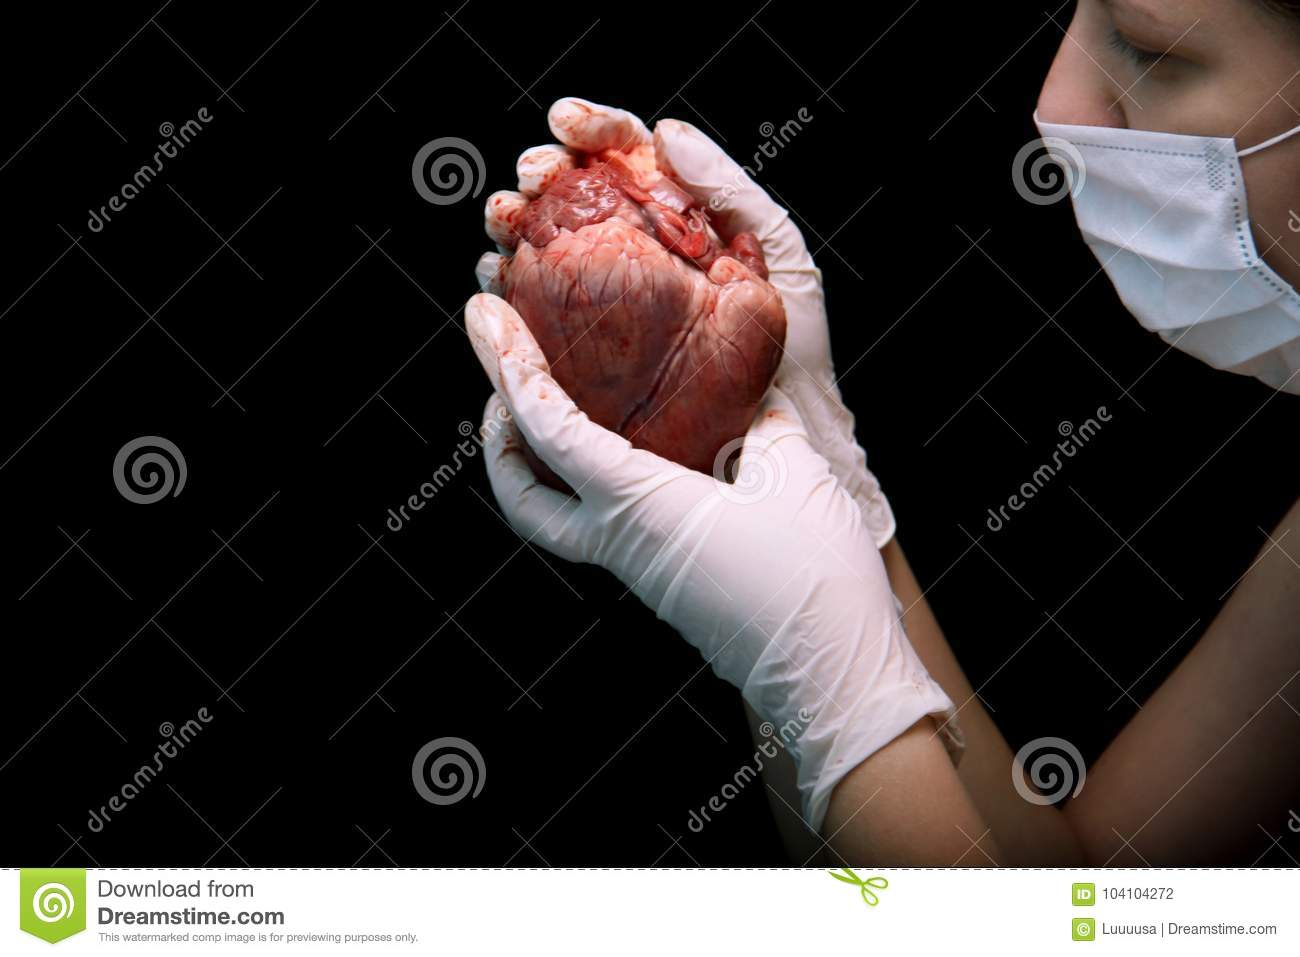 Abstract illegal organ transplantation. A human heart in the hand of a surgeon woman. International crime. Assassins in white coat